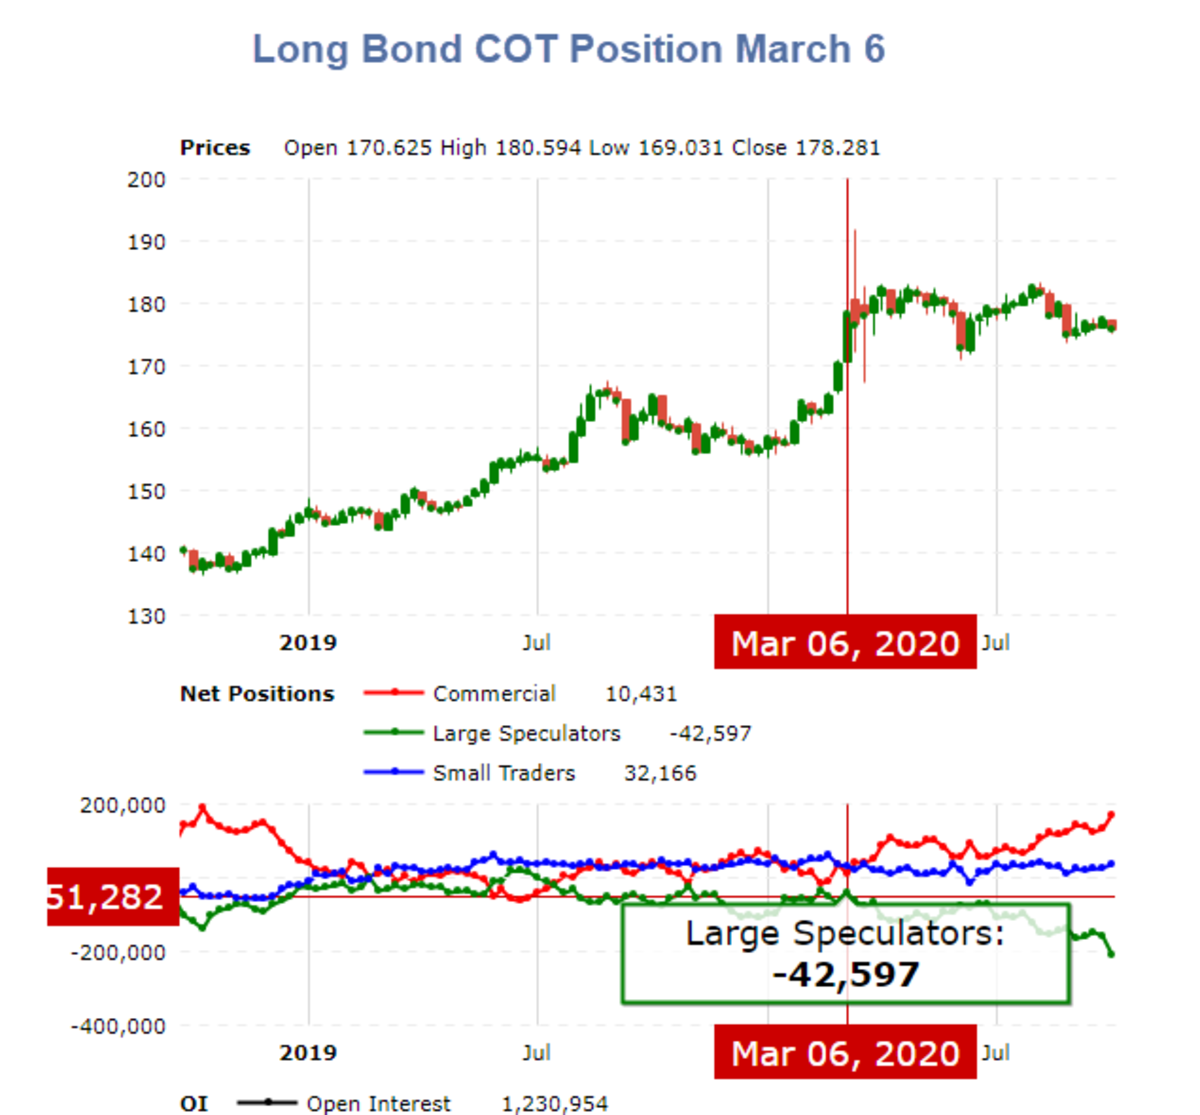 Long Bond COT Position March 6